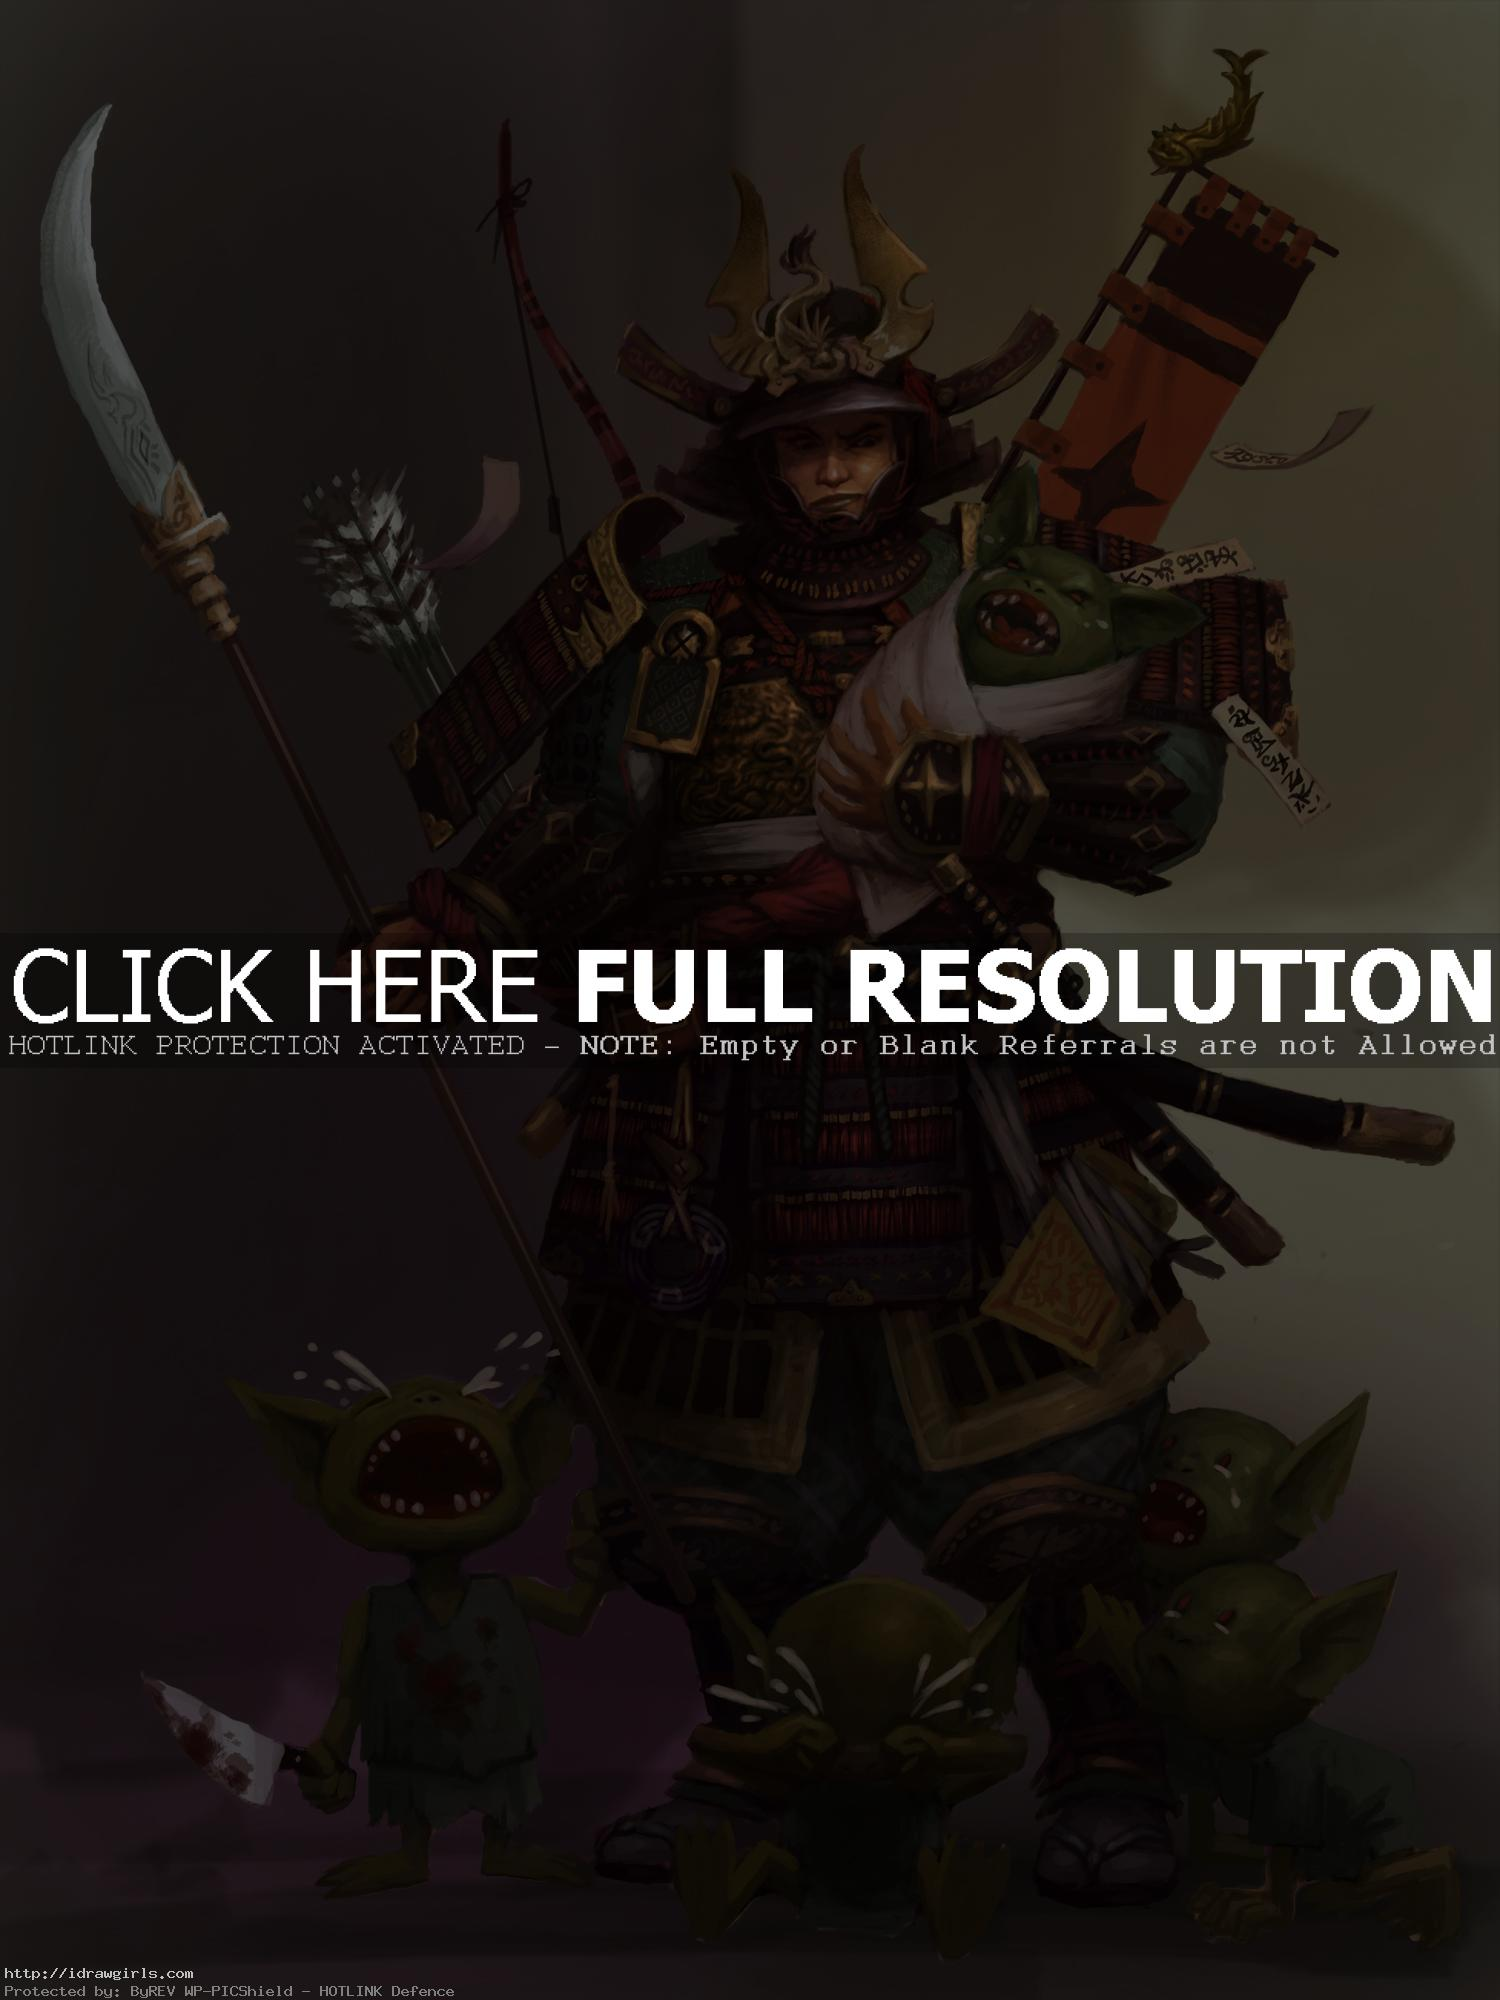 samurai gen concept art Photoshop digital painting tutorial Samurai character